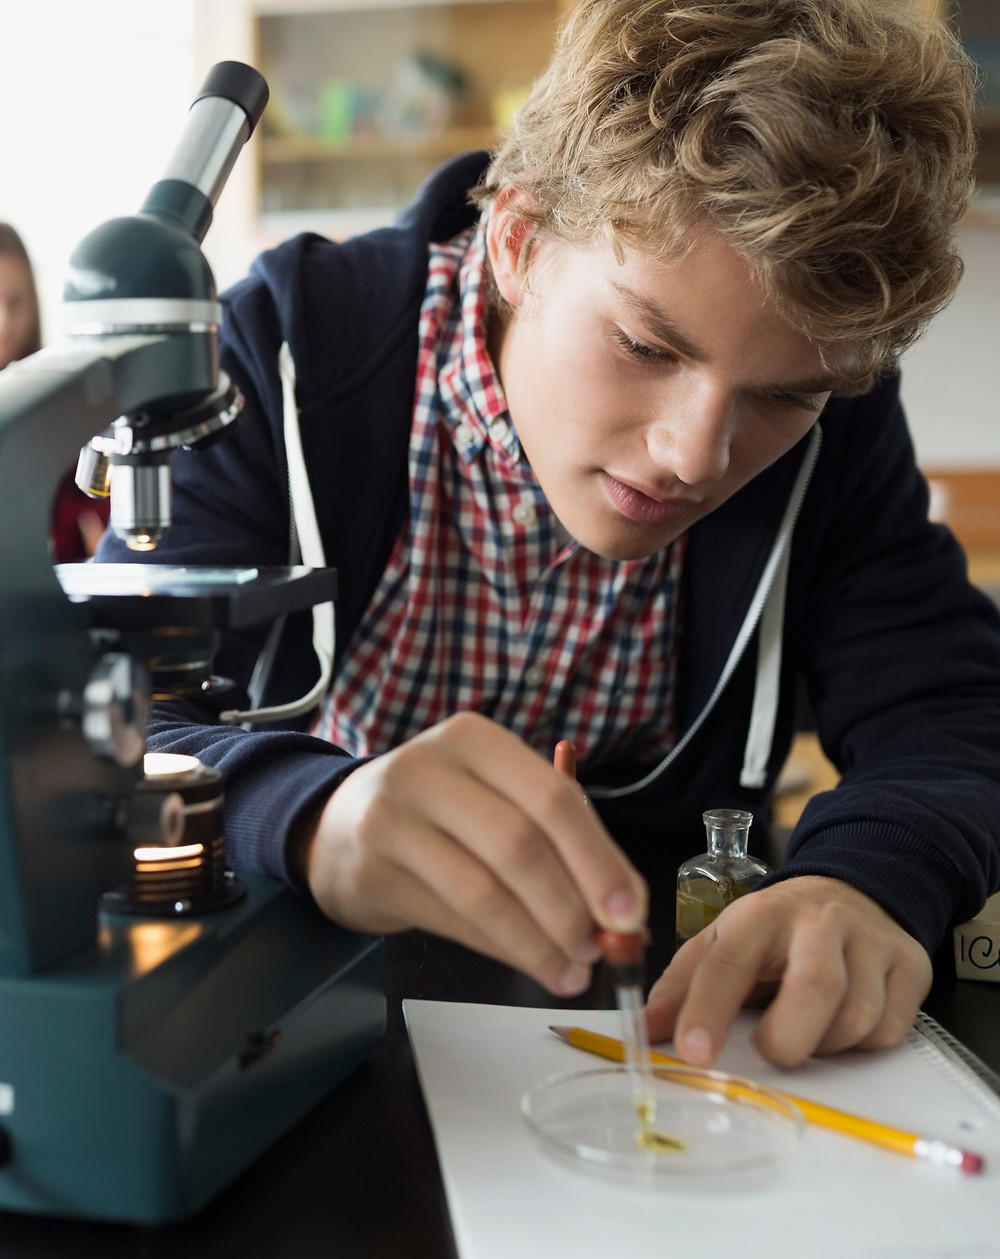 teenage boy in science lab completing school experiment GCSEs